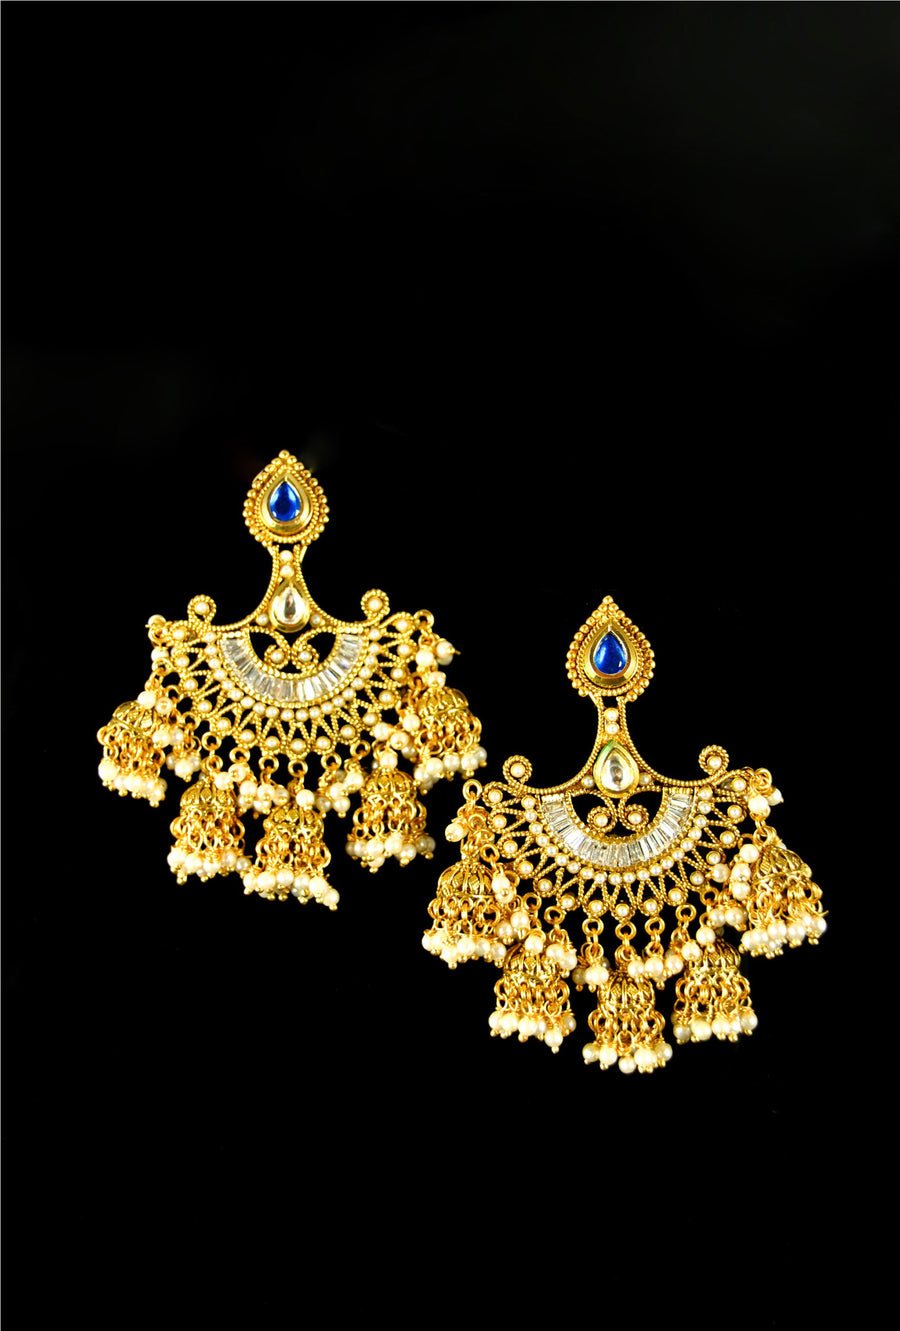 Traditional rajwadi style earrings - Desi Royale